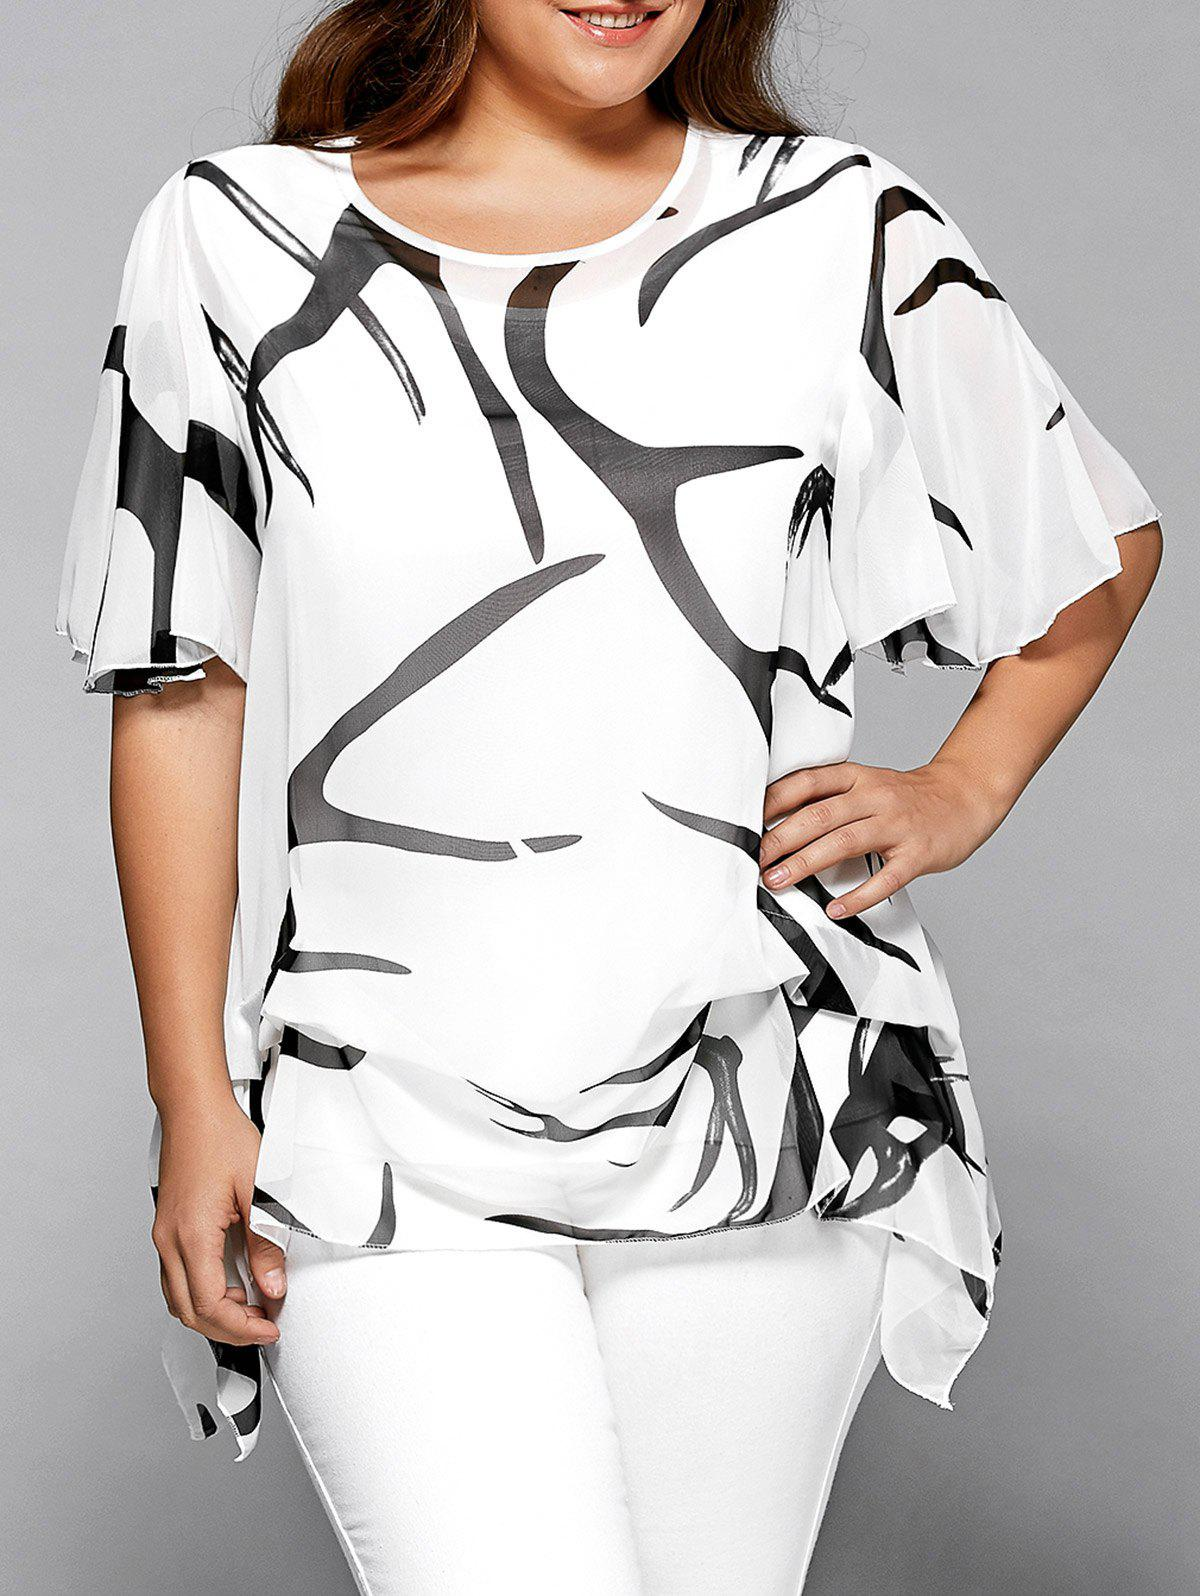 Printed Chiffon Asymmetric Plus Size Blouse